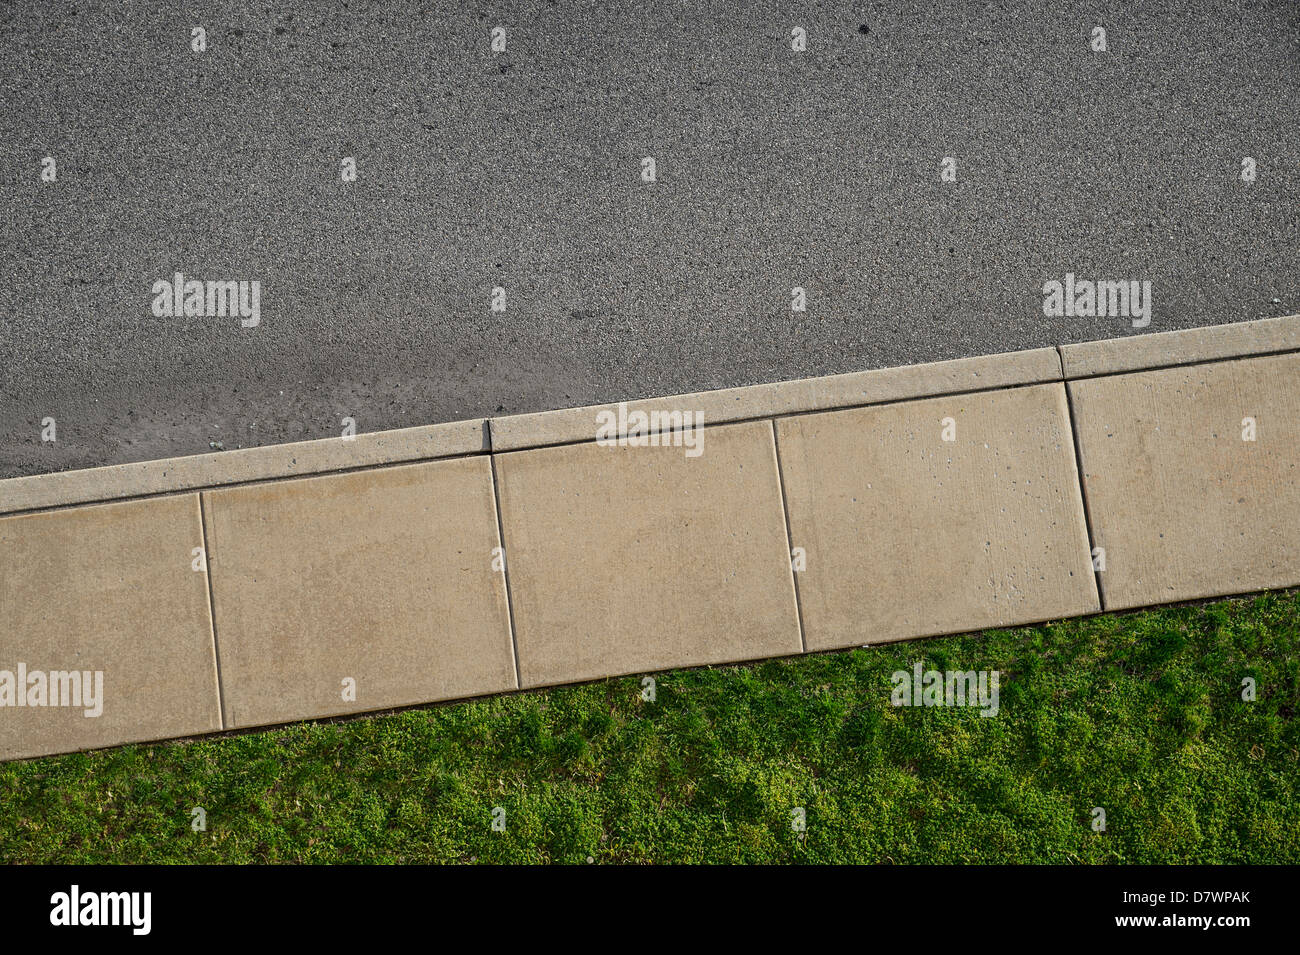 Aerial View Of Empty Sidewalk - Stock Image